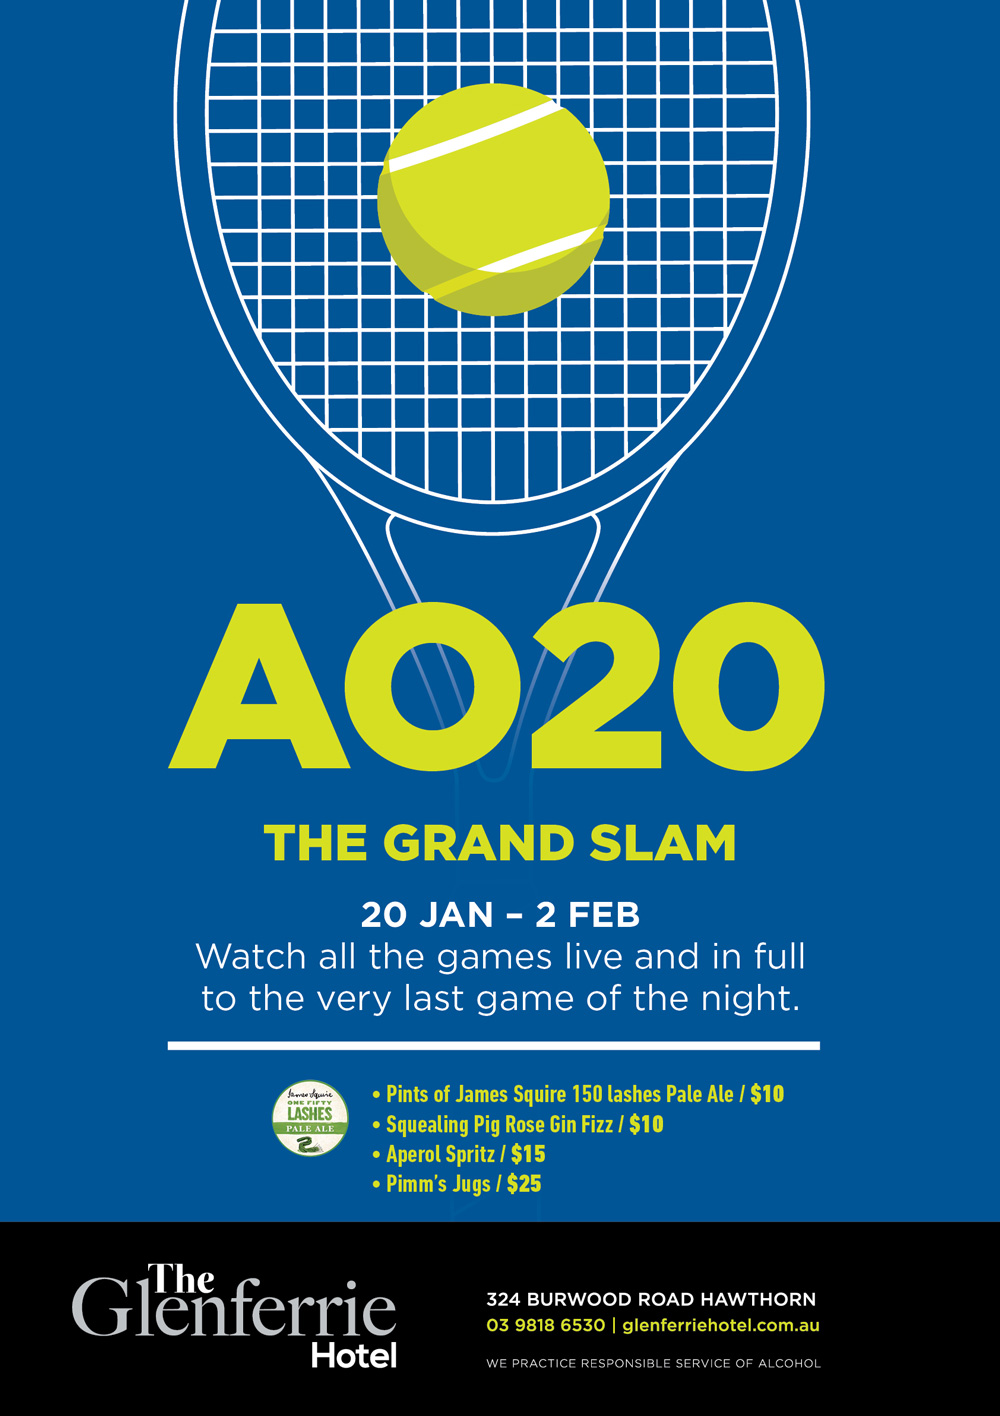 A020 Grand slam at Glenferrie Hotel